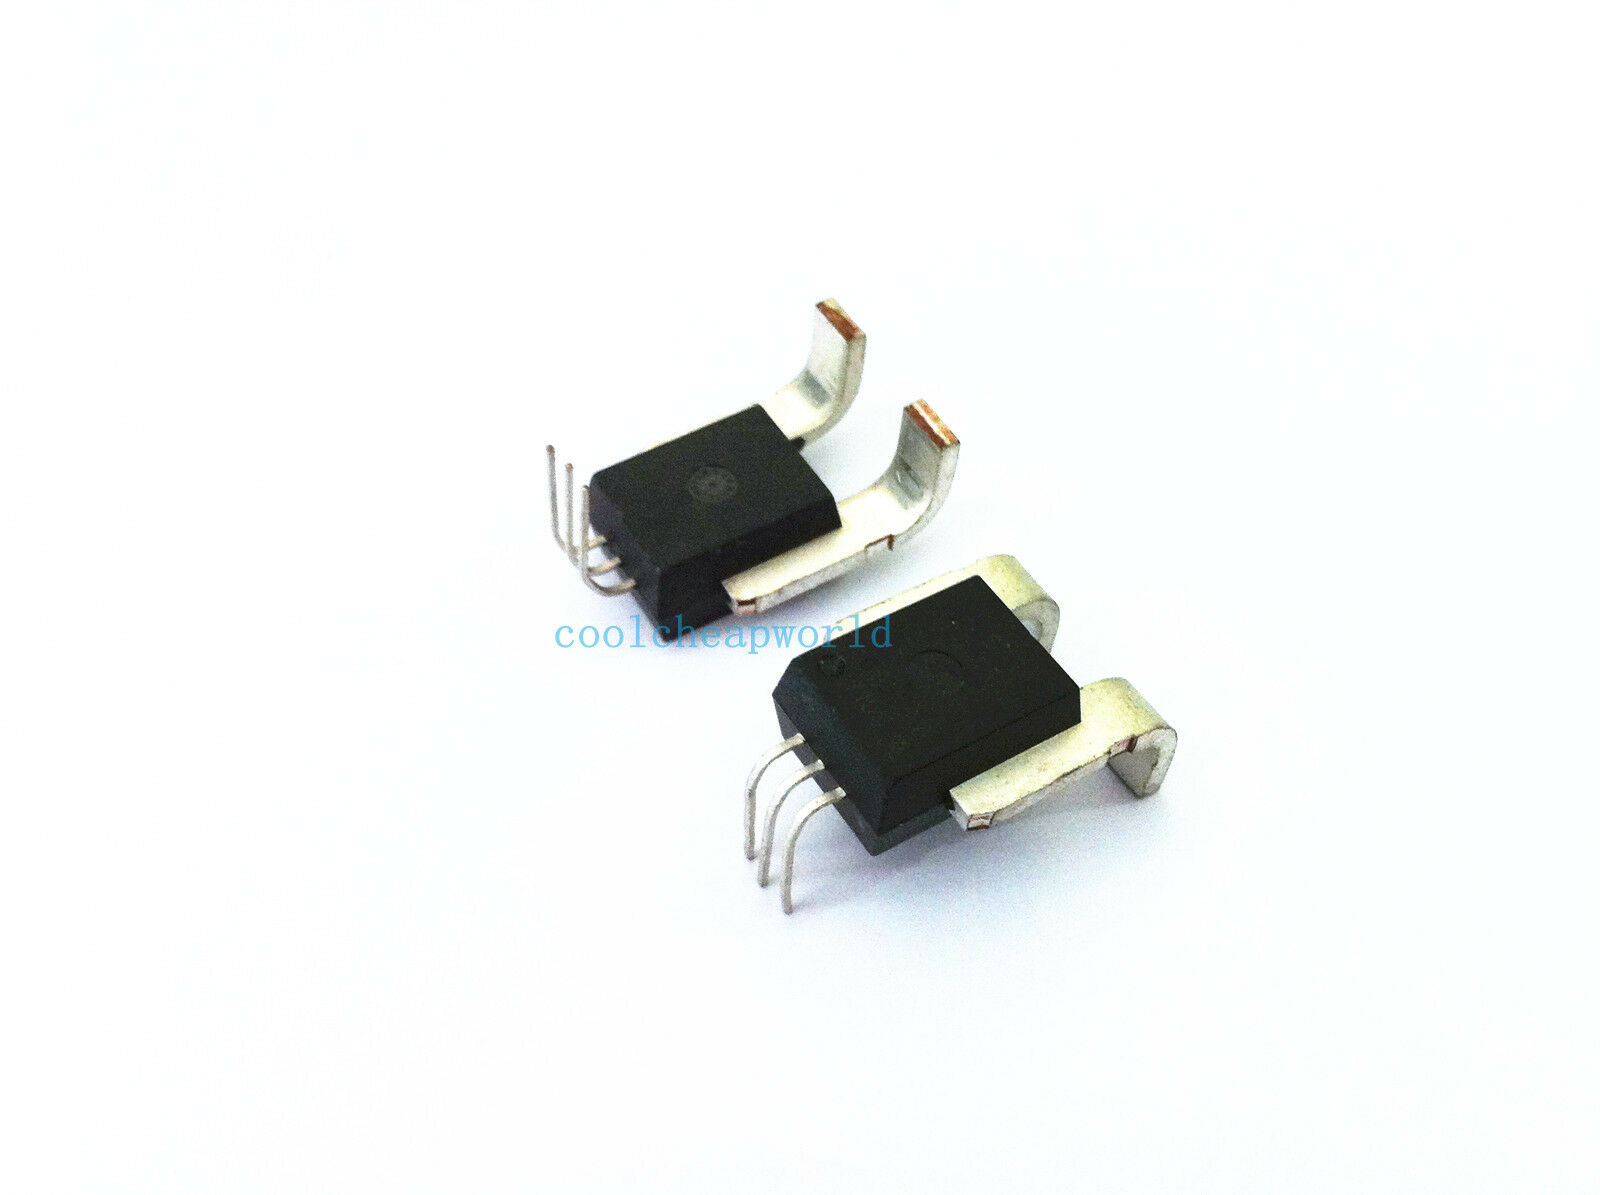 1pcs Acs756sca 050b Pff T Hall Effect High Current Sensor Ebay Ic Sensors Circuit Be The First To Write A Review Almost Gone Picture 1 Of